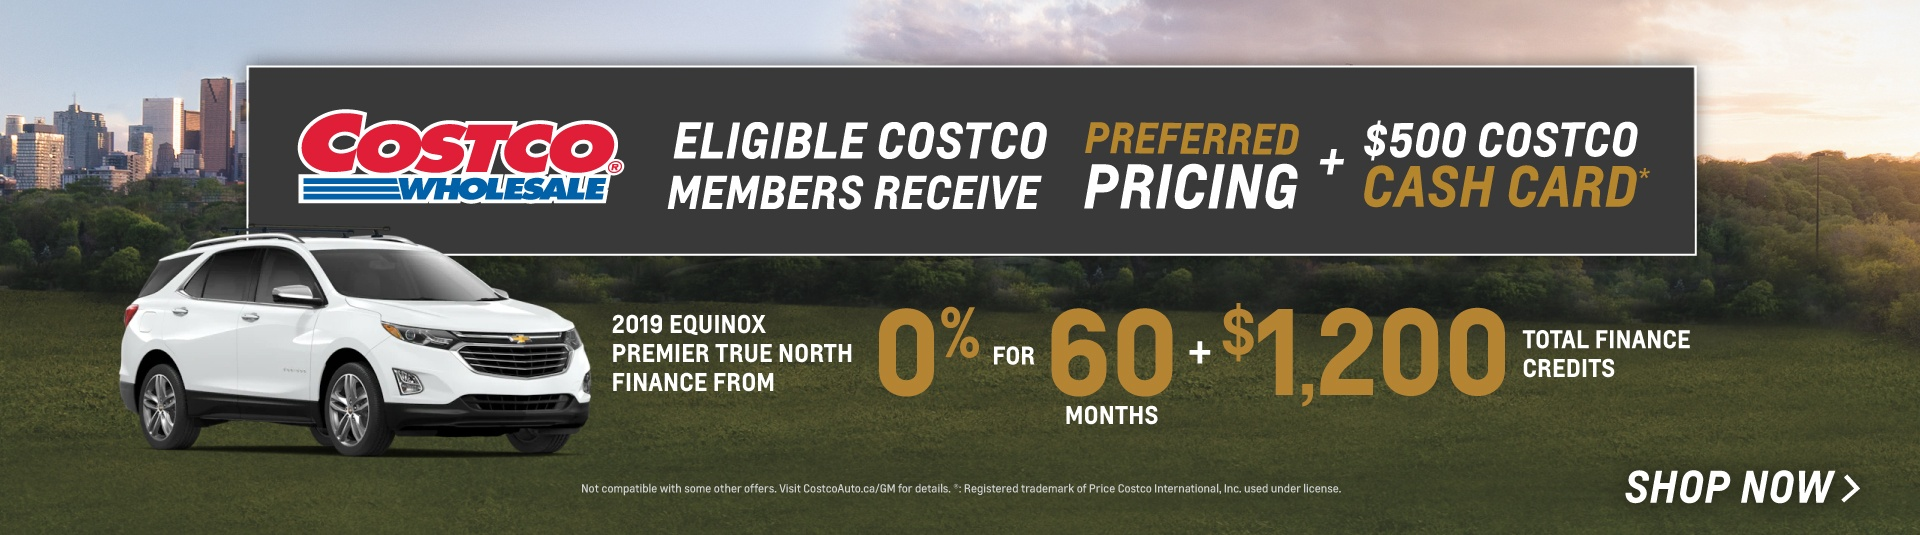 2019 Chevrolet Equinox Costco Preferred Pricing Offer in Mississauga